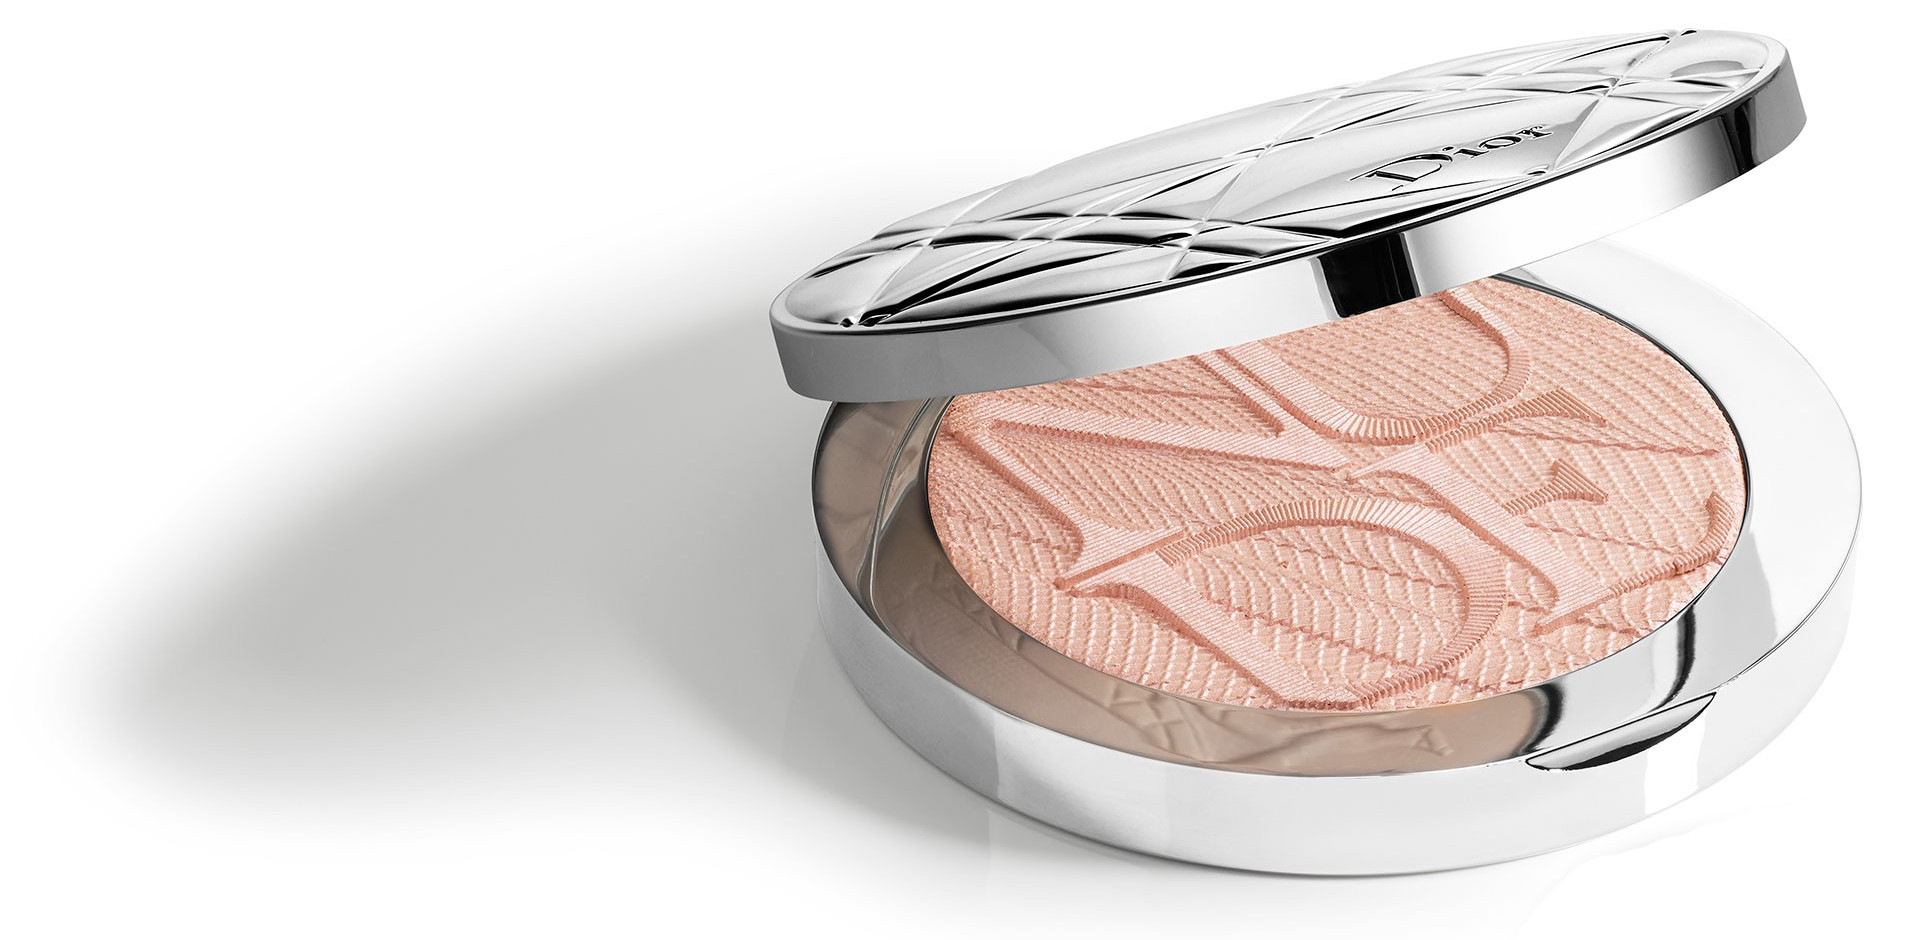 Dior Spring 2018 Collection GLOW ADDICT Diorskin Nude Air Powder Compact